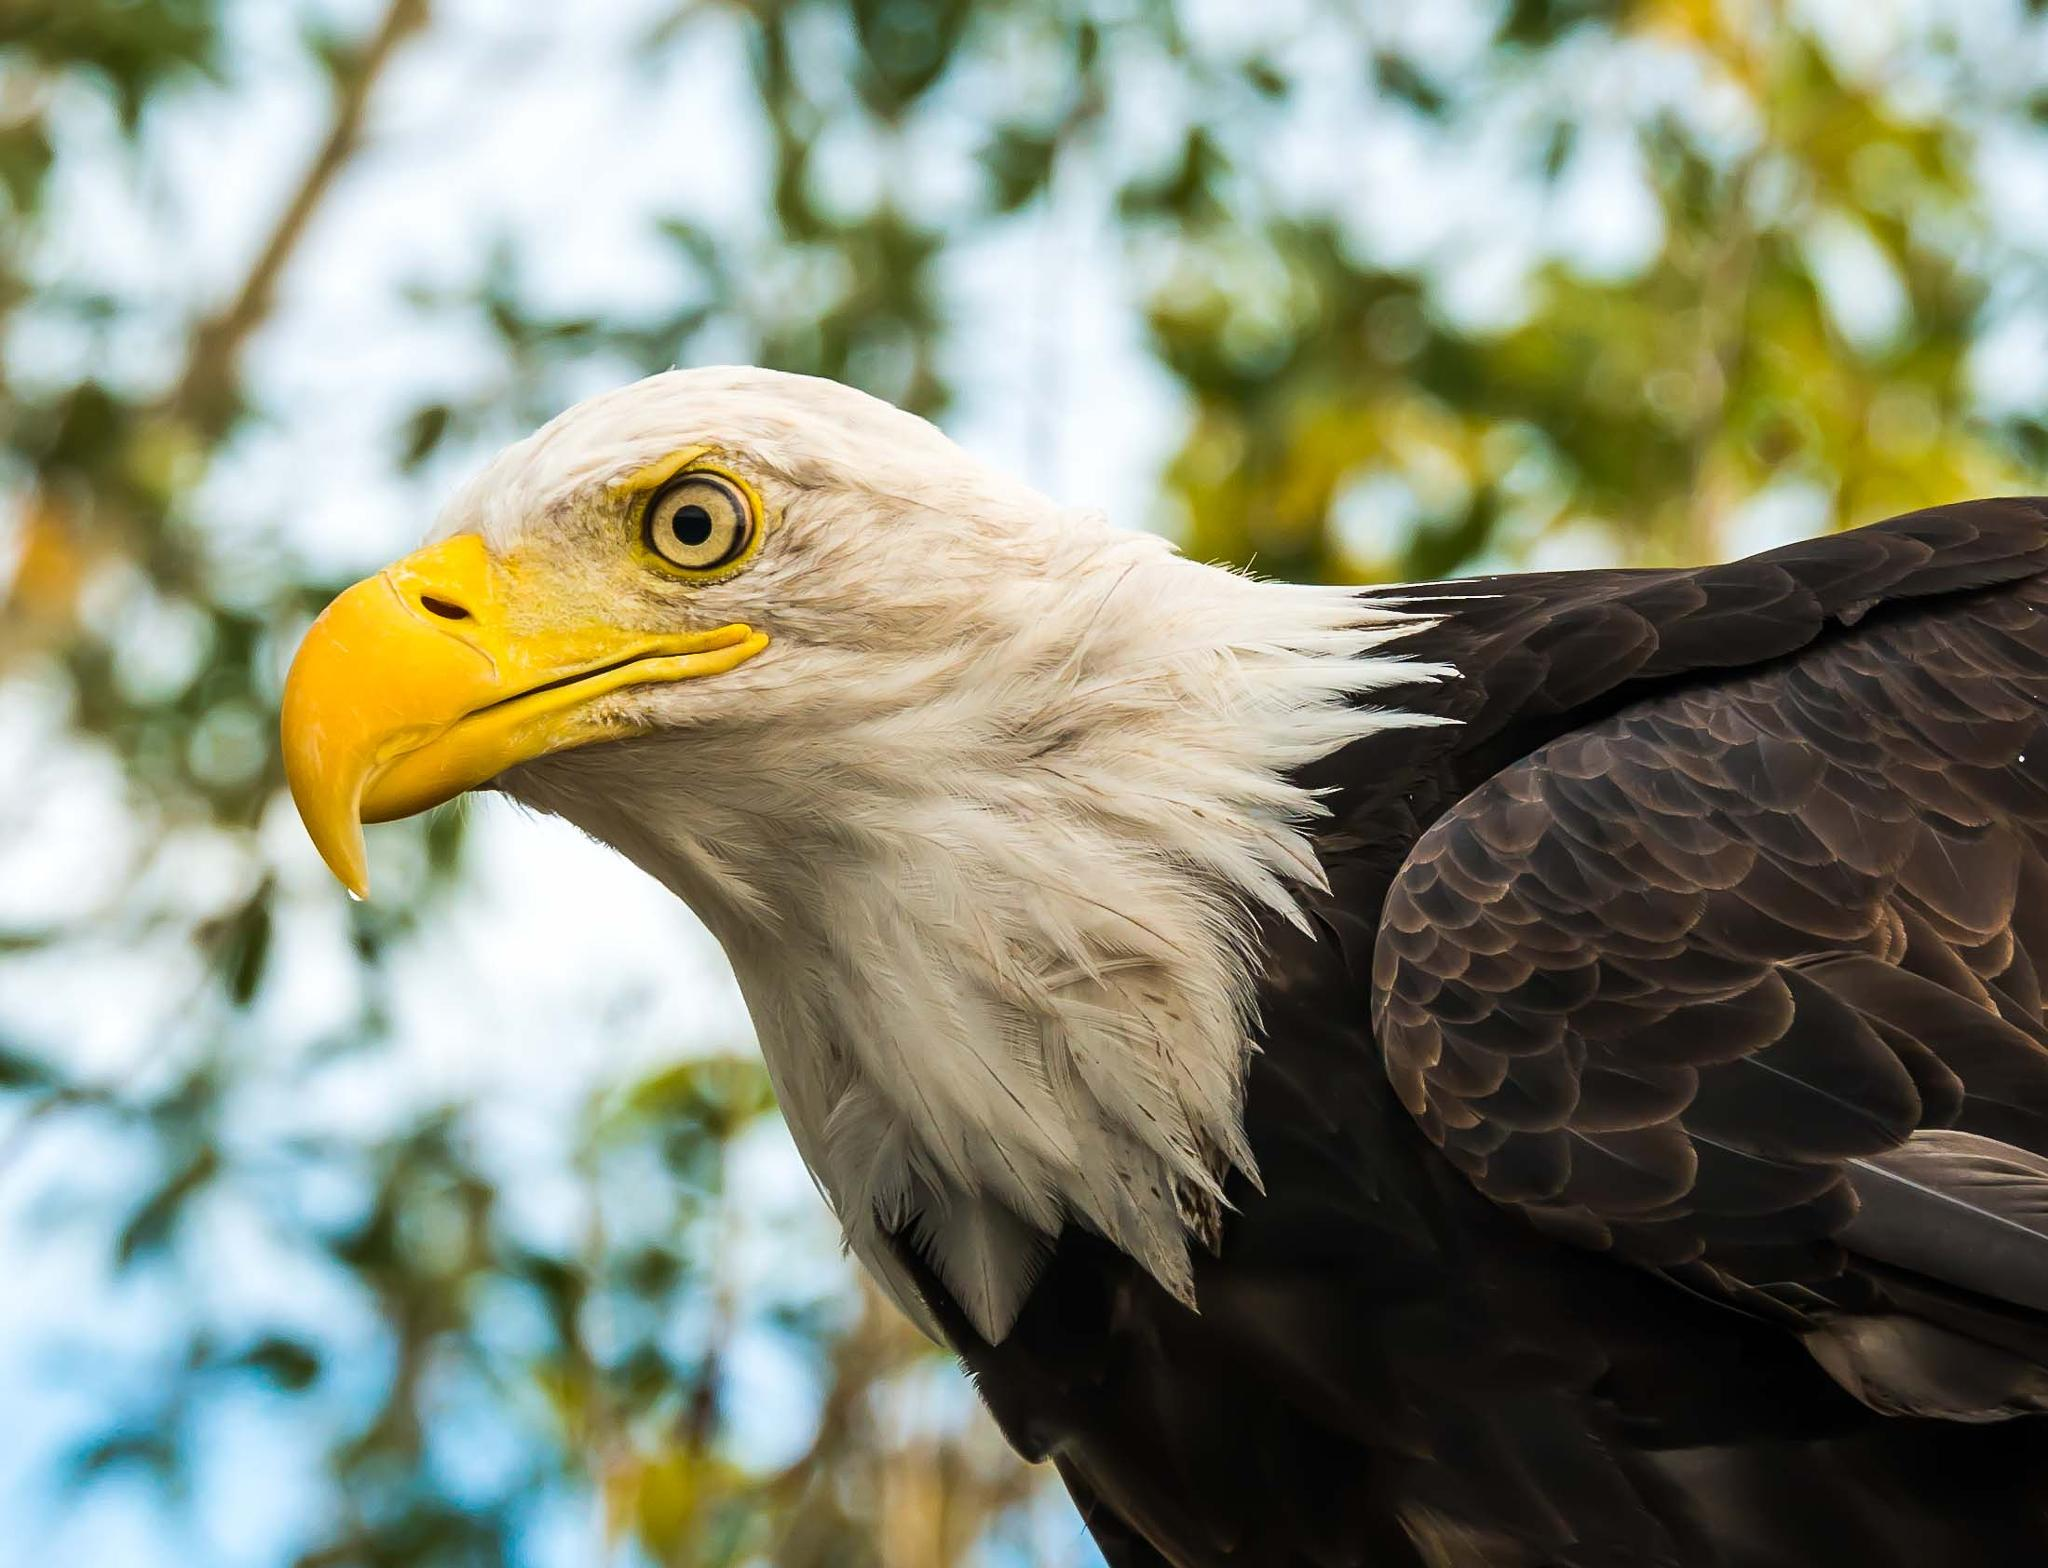 The Bald Eagle by Craig Turner